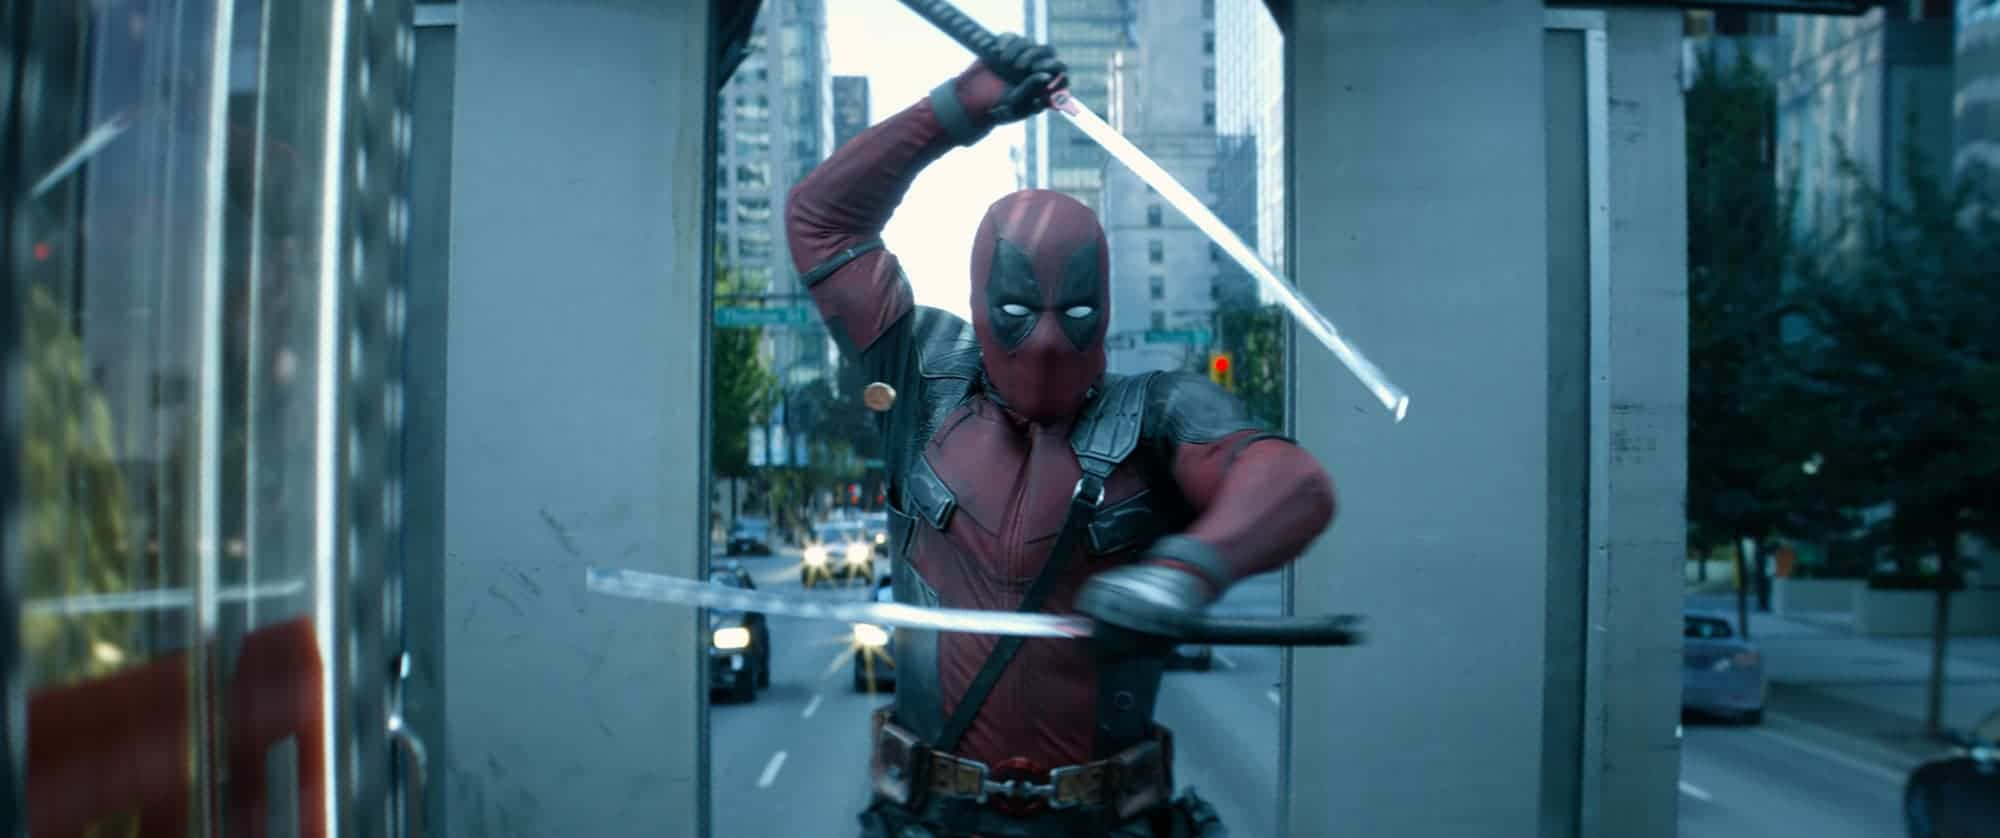 Marvel Studios Not Sure If They Want To Make Deadpool 3